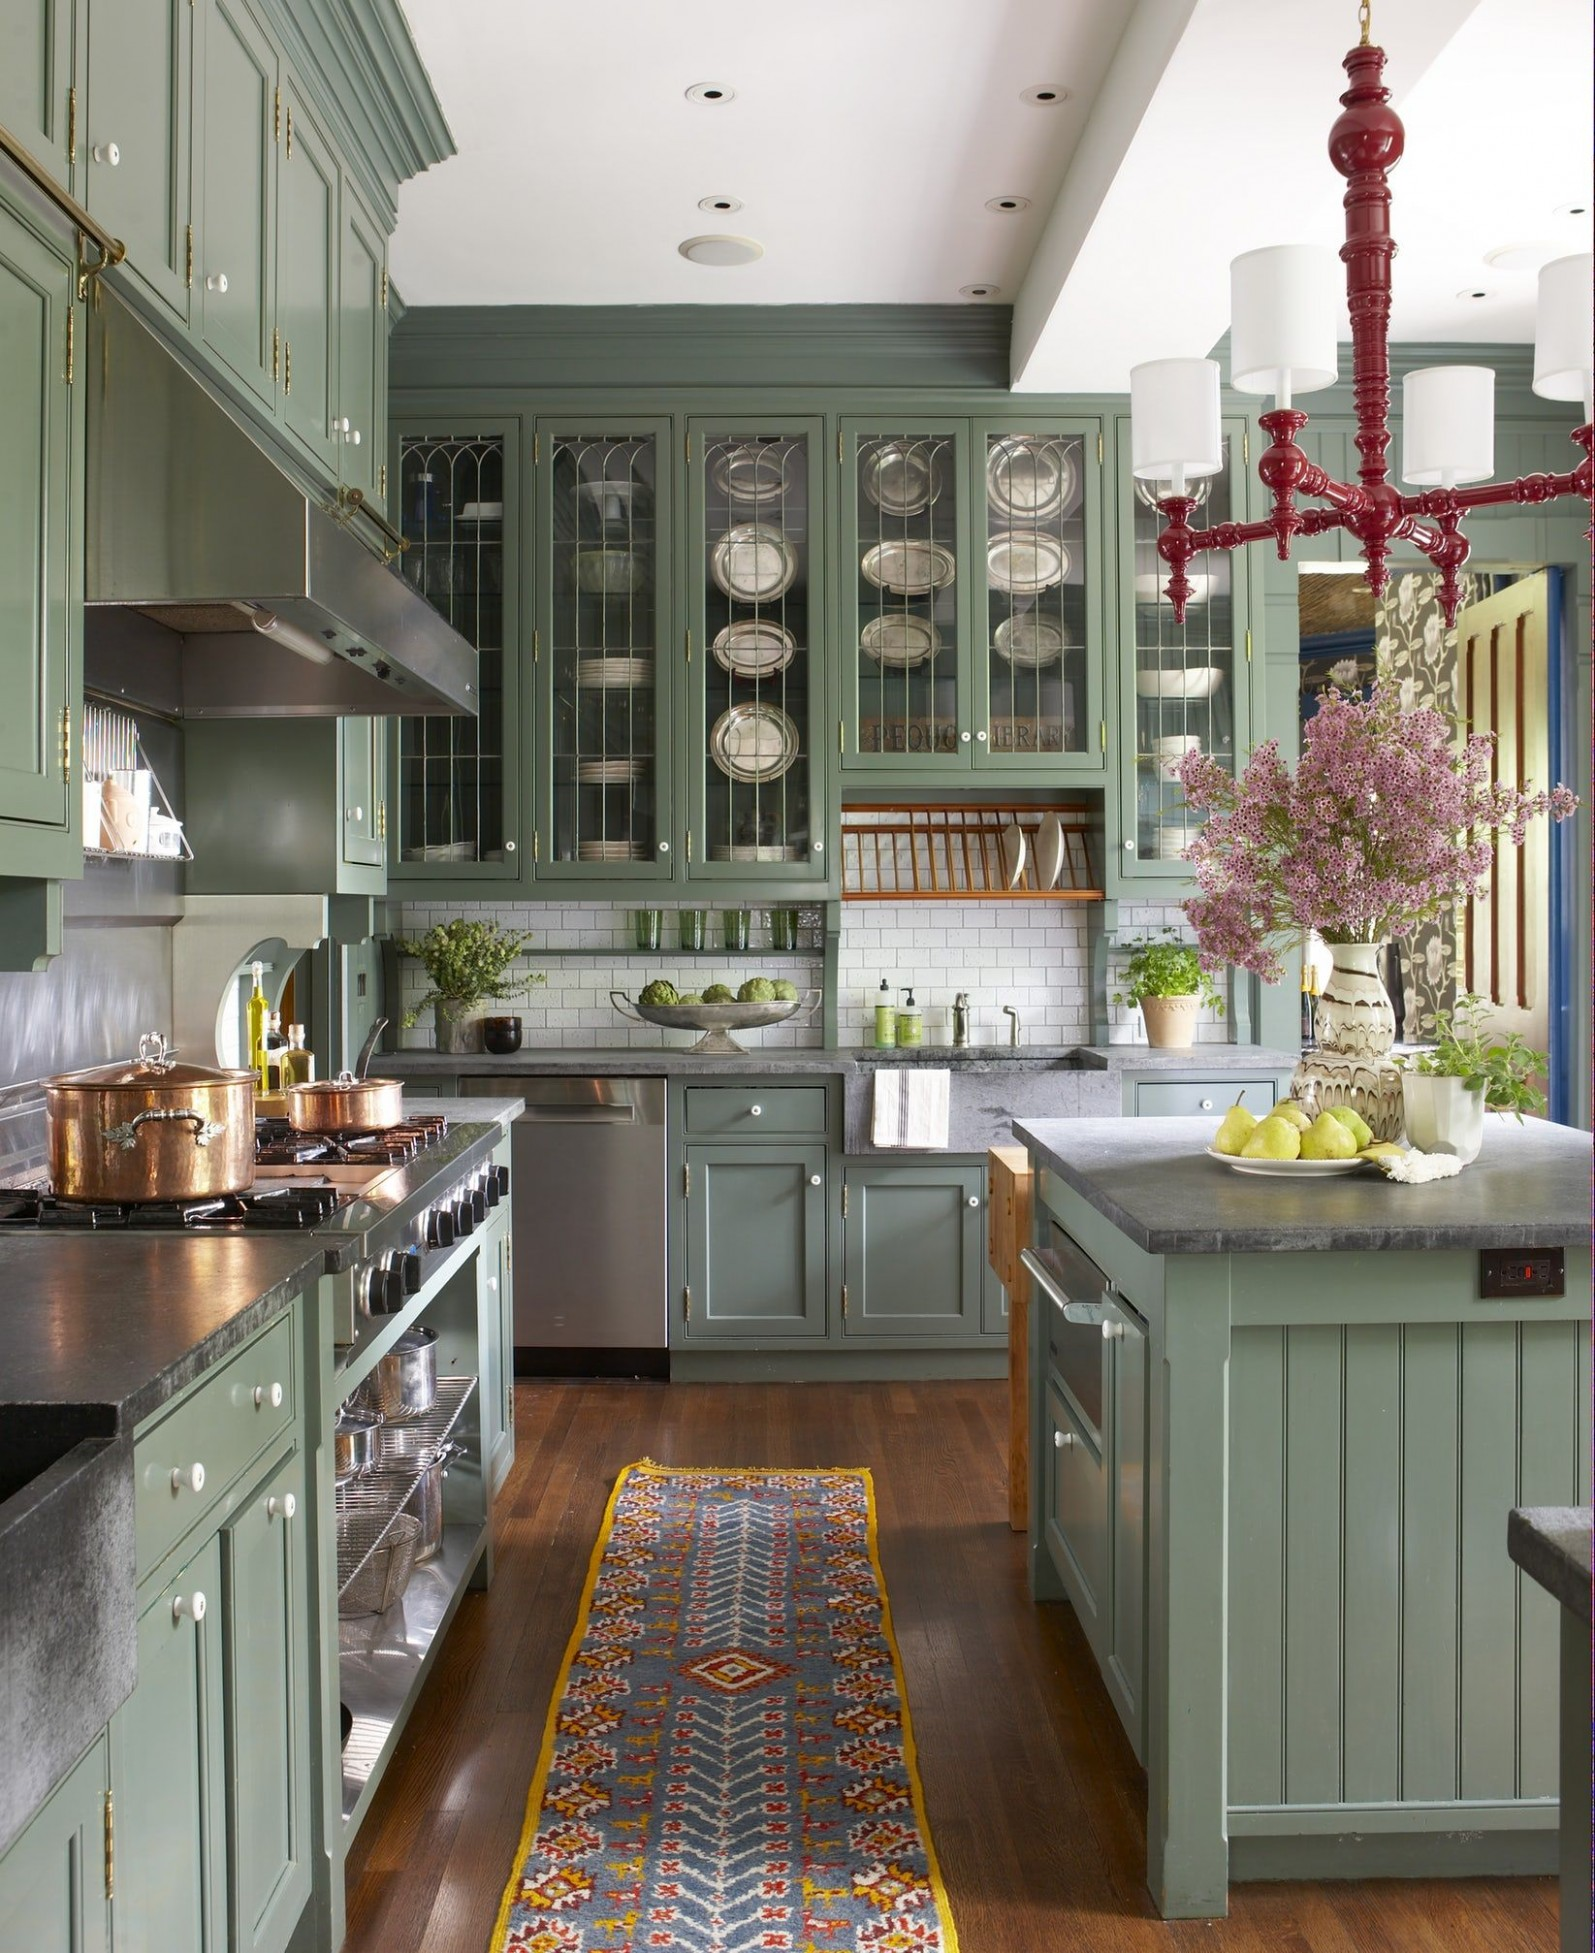 8 Green Kitchen Design Ideas - Paint Colors for Green Kitchens - Green Kitchen With Dark Cabinet